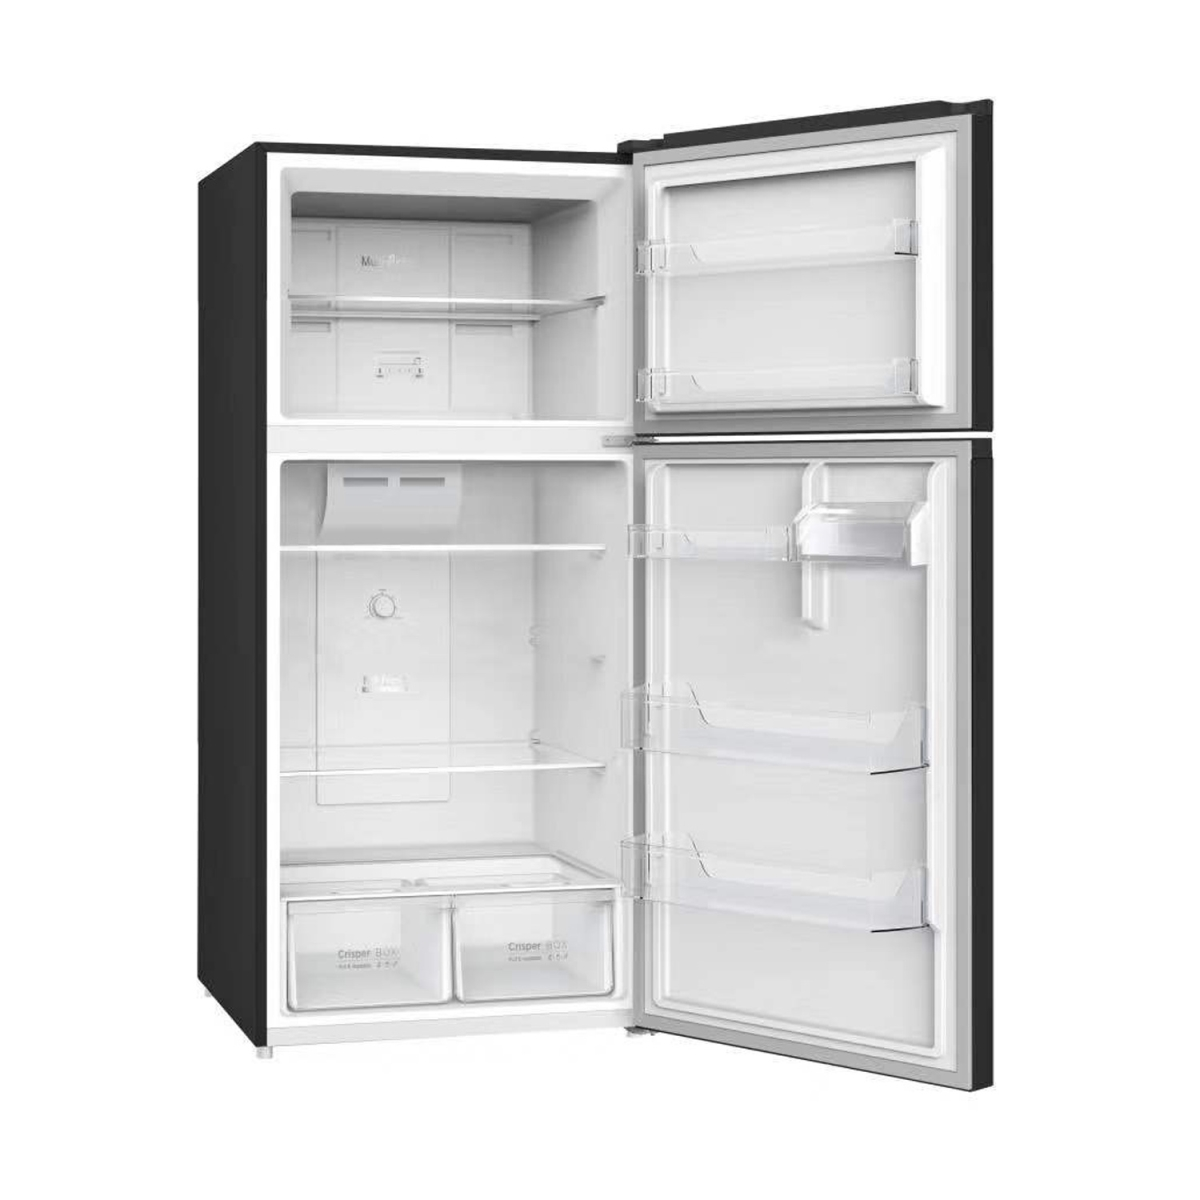 Equator-Conserv 18 cu.ft. Top Freezer Apartment Refrigerator Stainless with Ice Maker